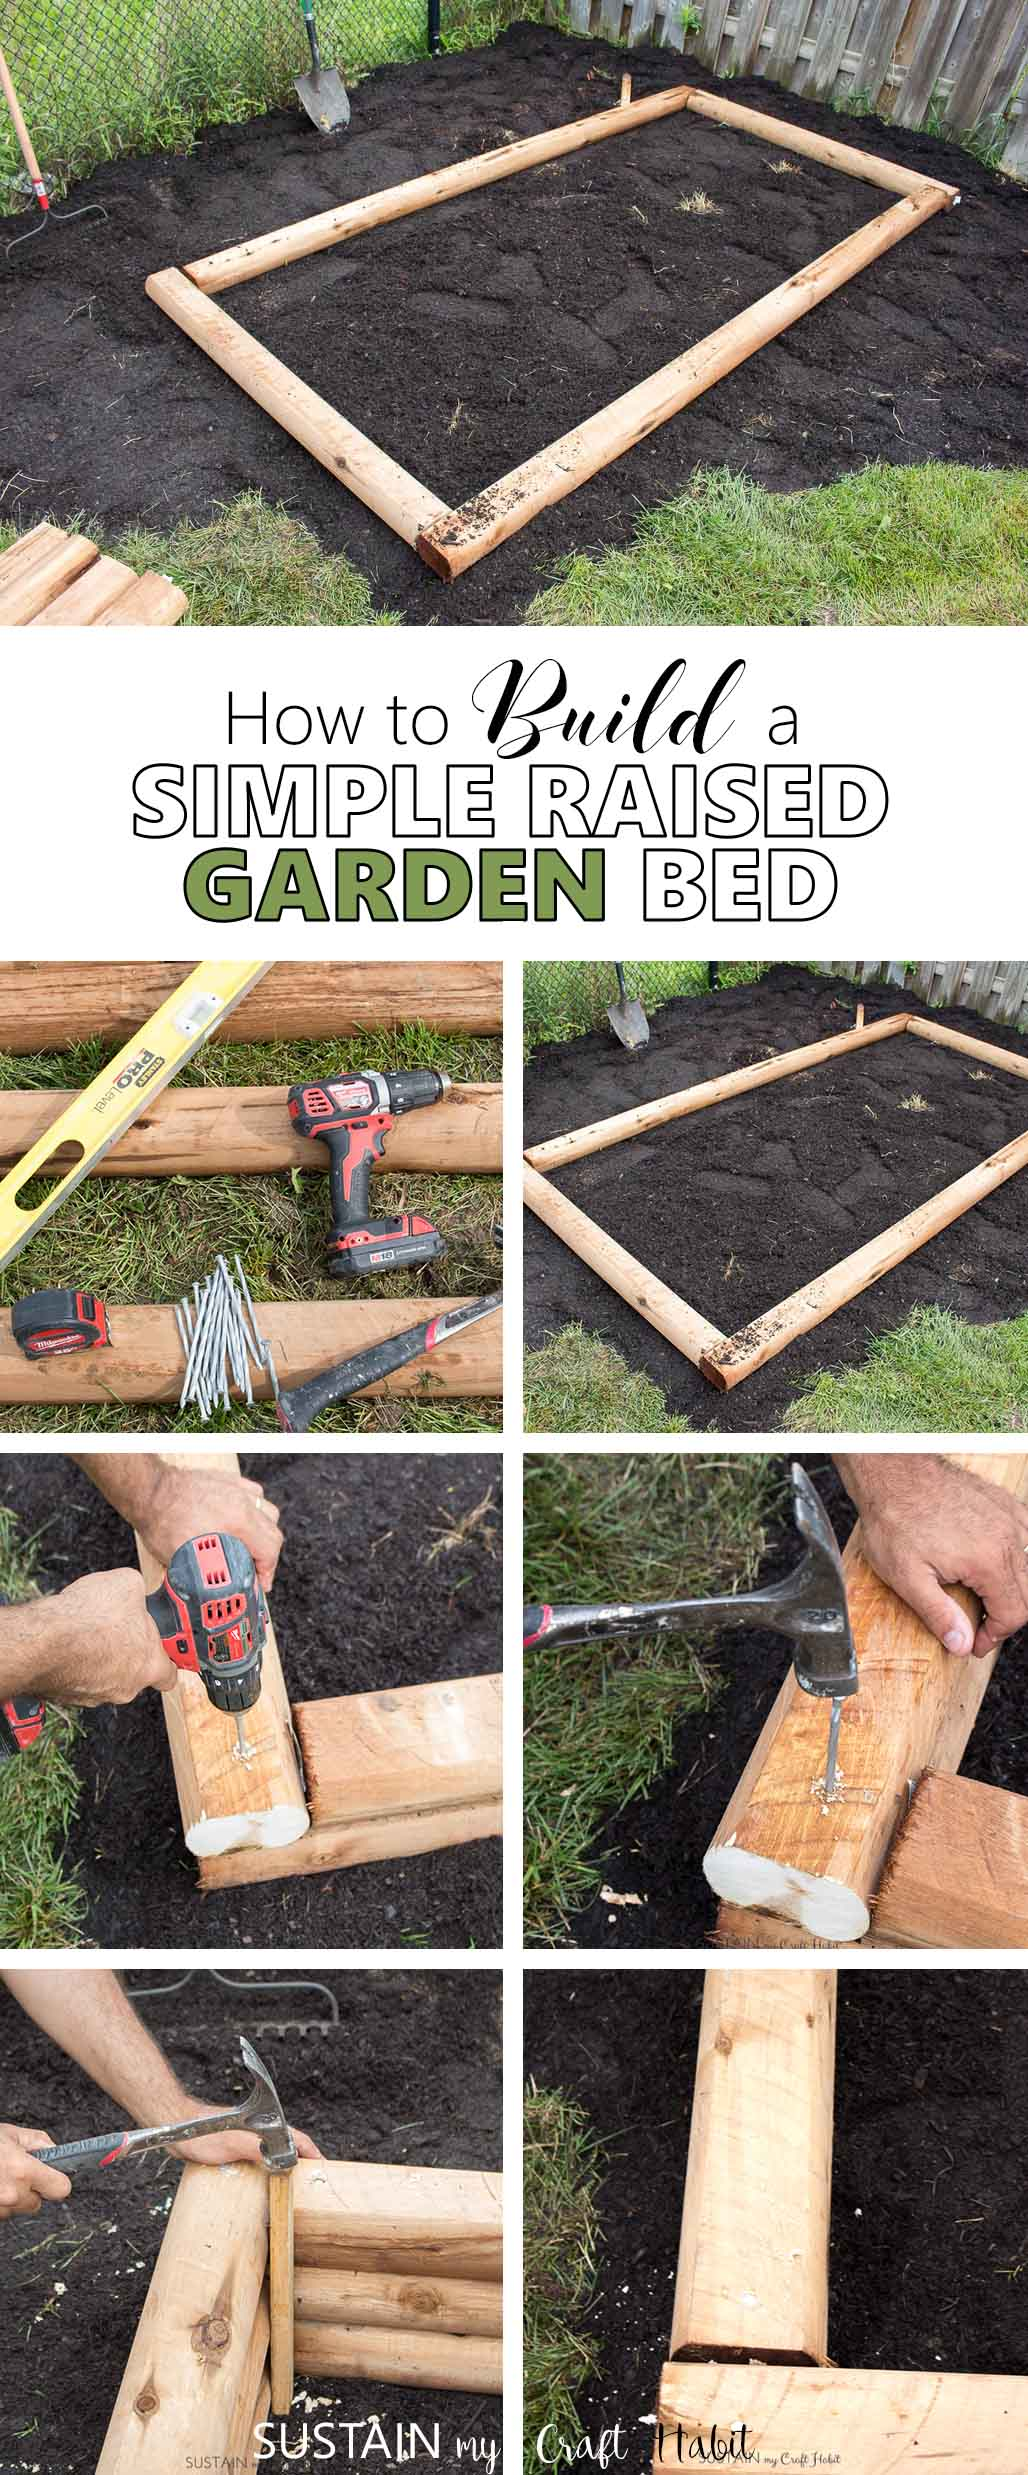 Instructions For Making Raised Garden Beds How To Build A Simple Raised Garden Bed Also Known As A